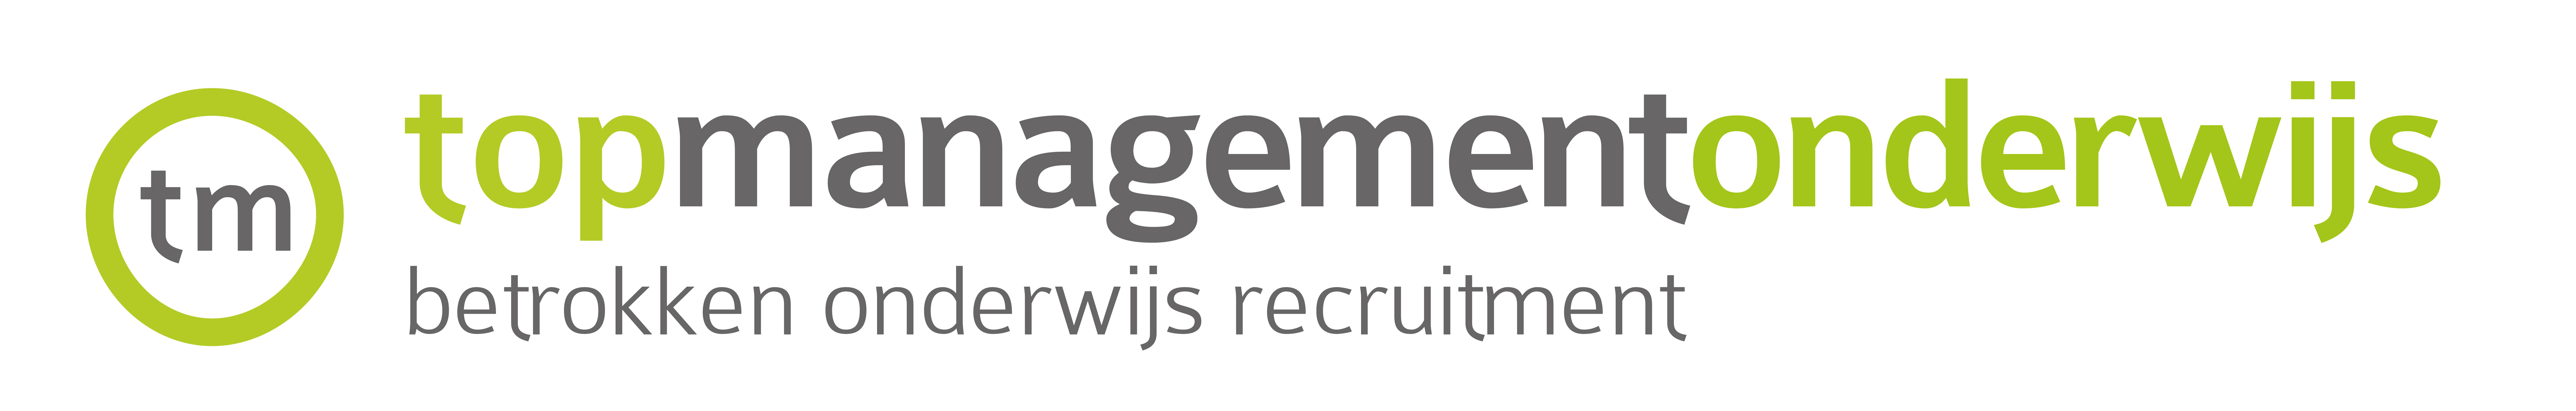 Scholen kiezen voor management recruitment online!